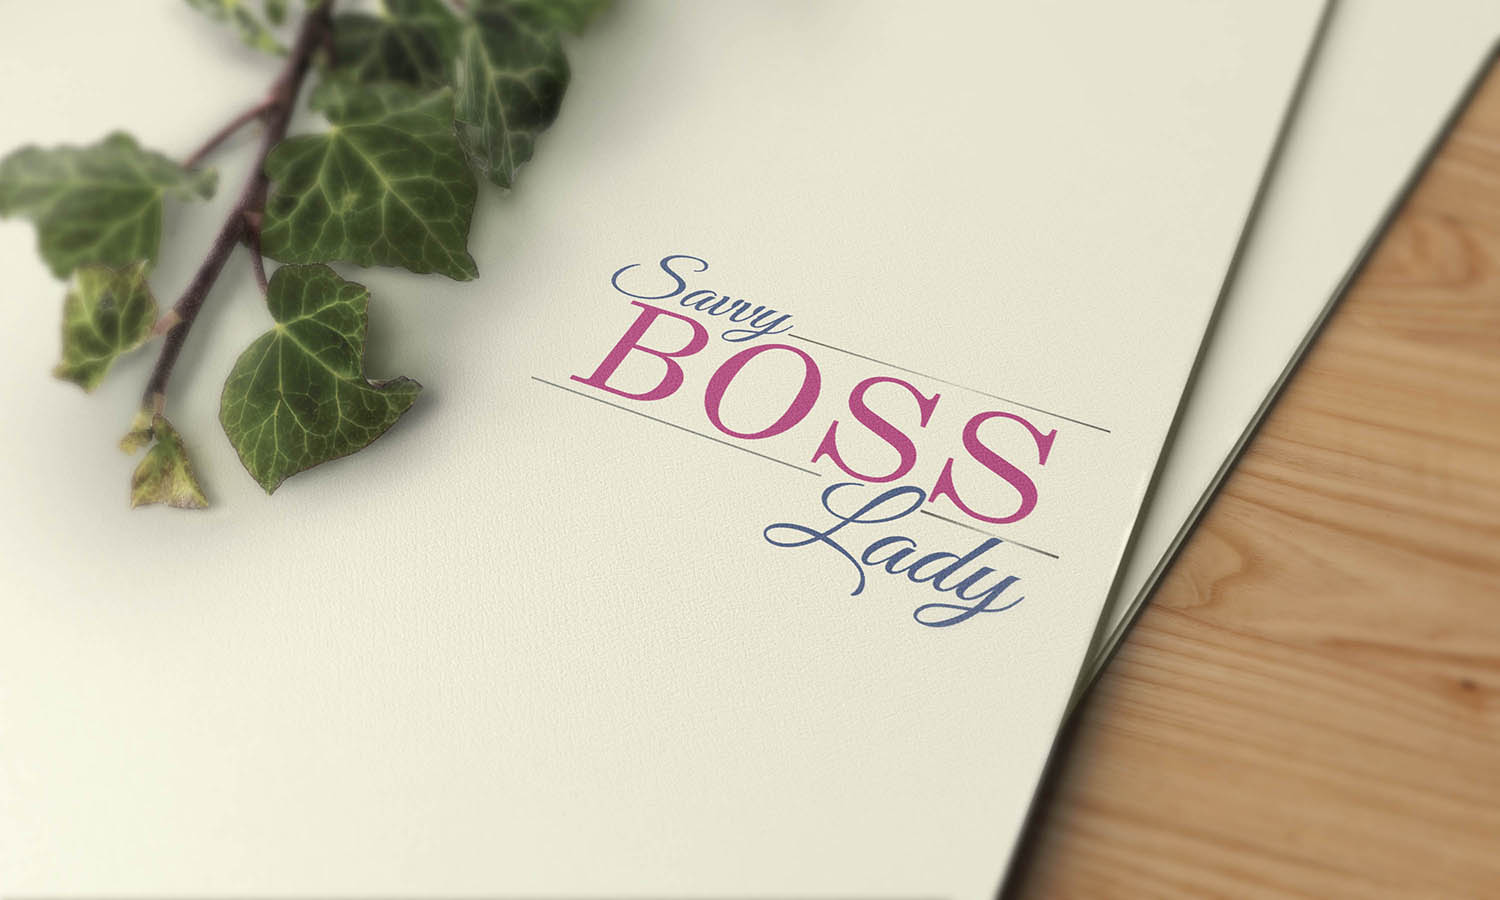 Logo design for Savvy Boss Lady